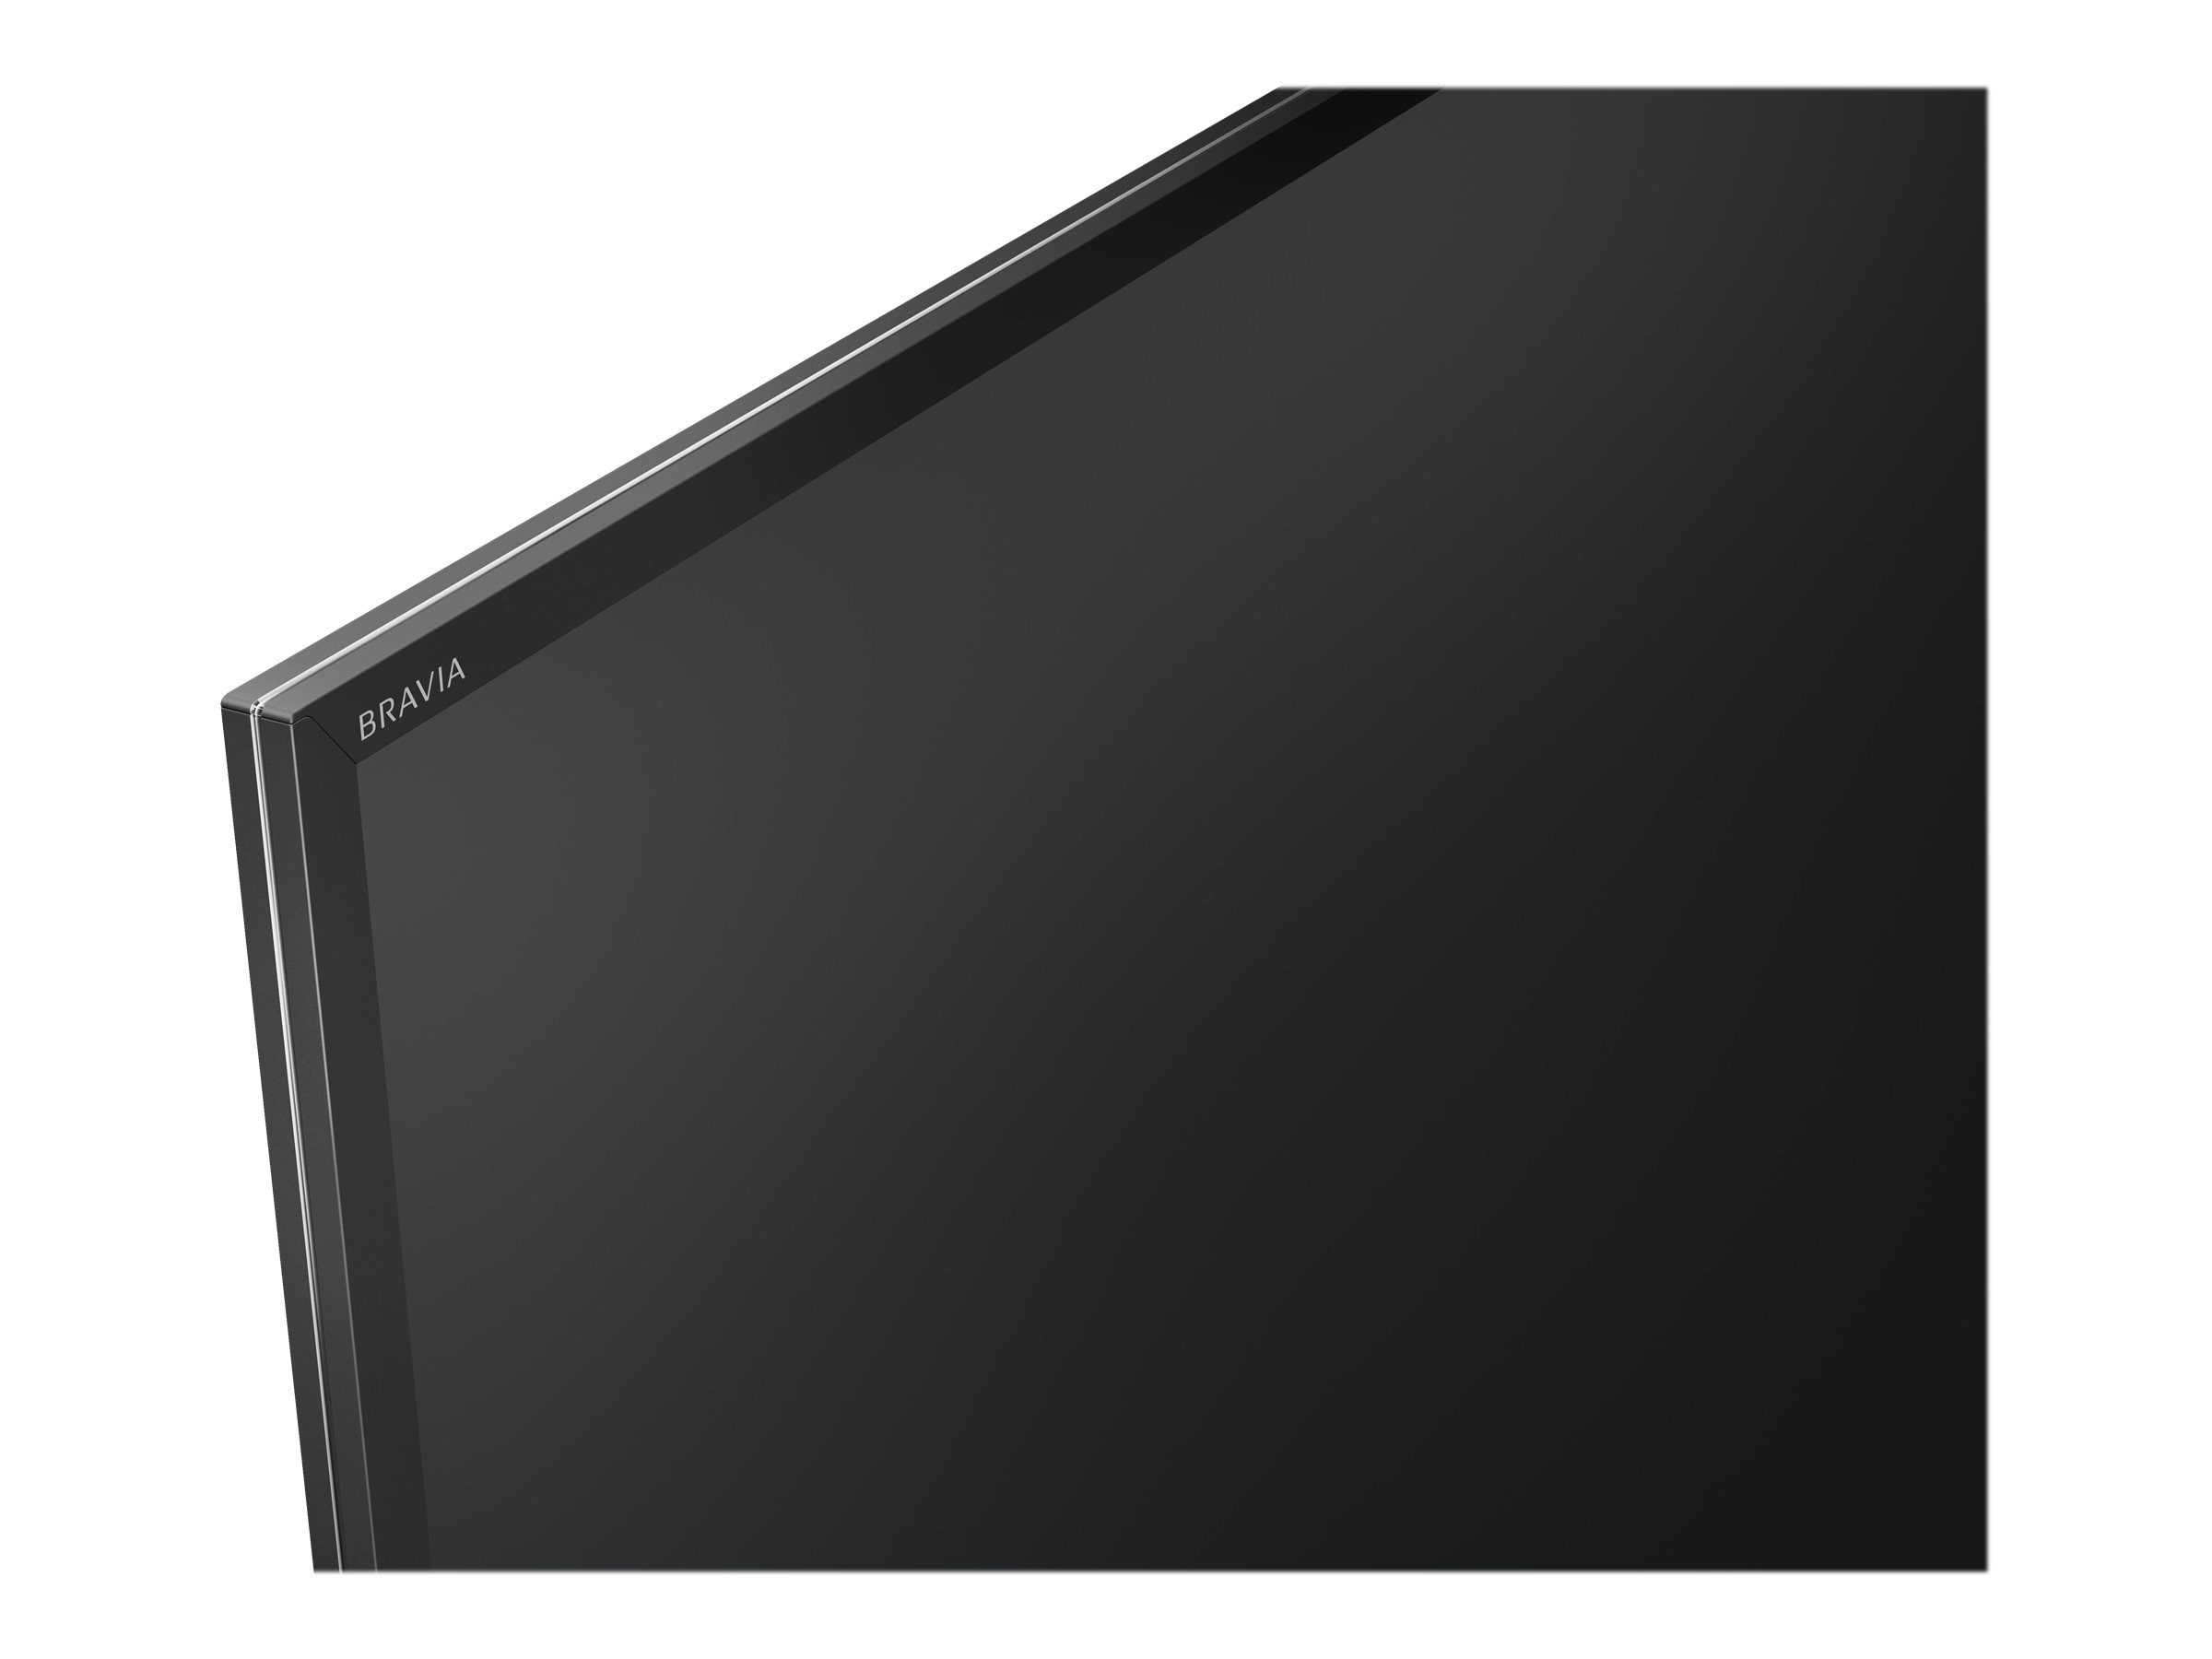 Sony 65 FWD65X850E 4K Ultra HD LED Display, Black, FWD65X850E